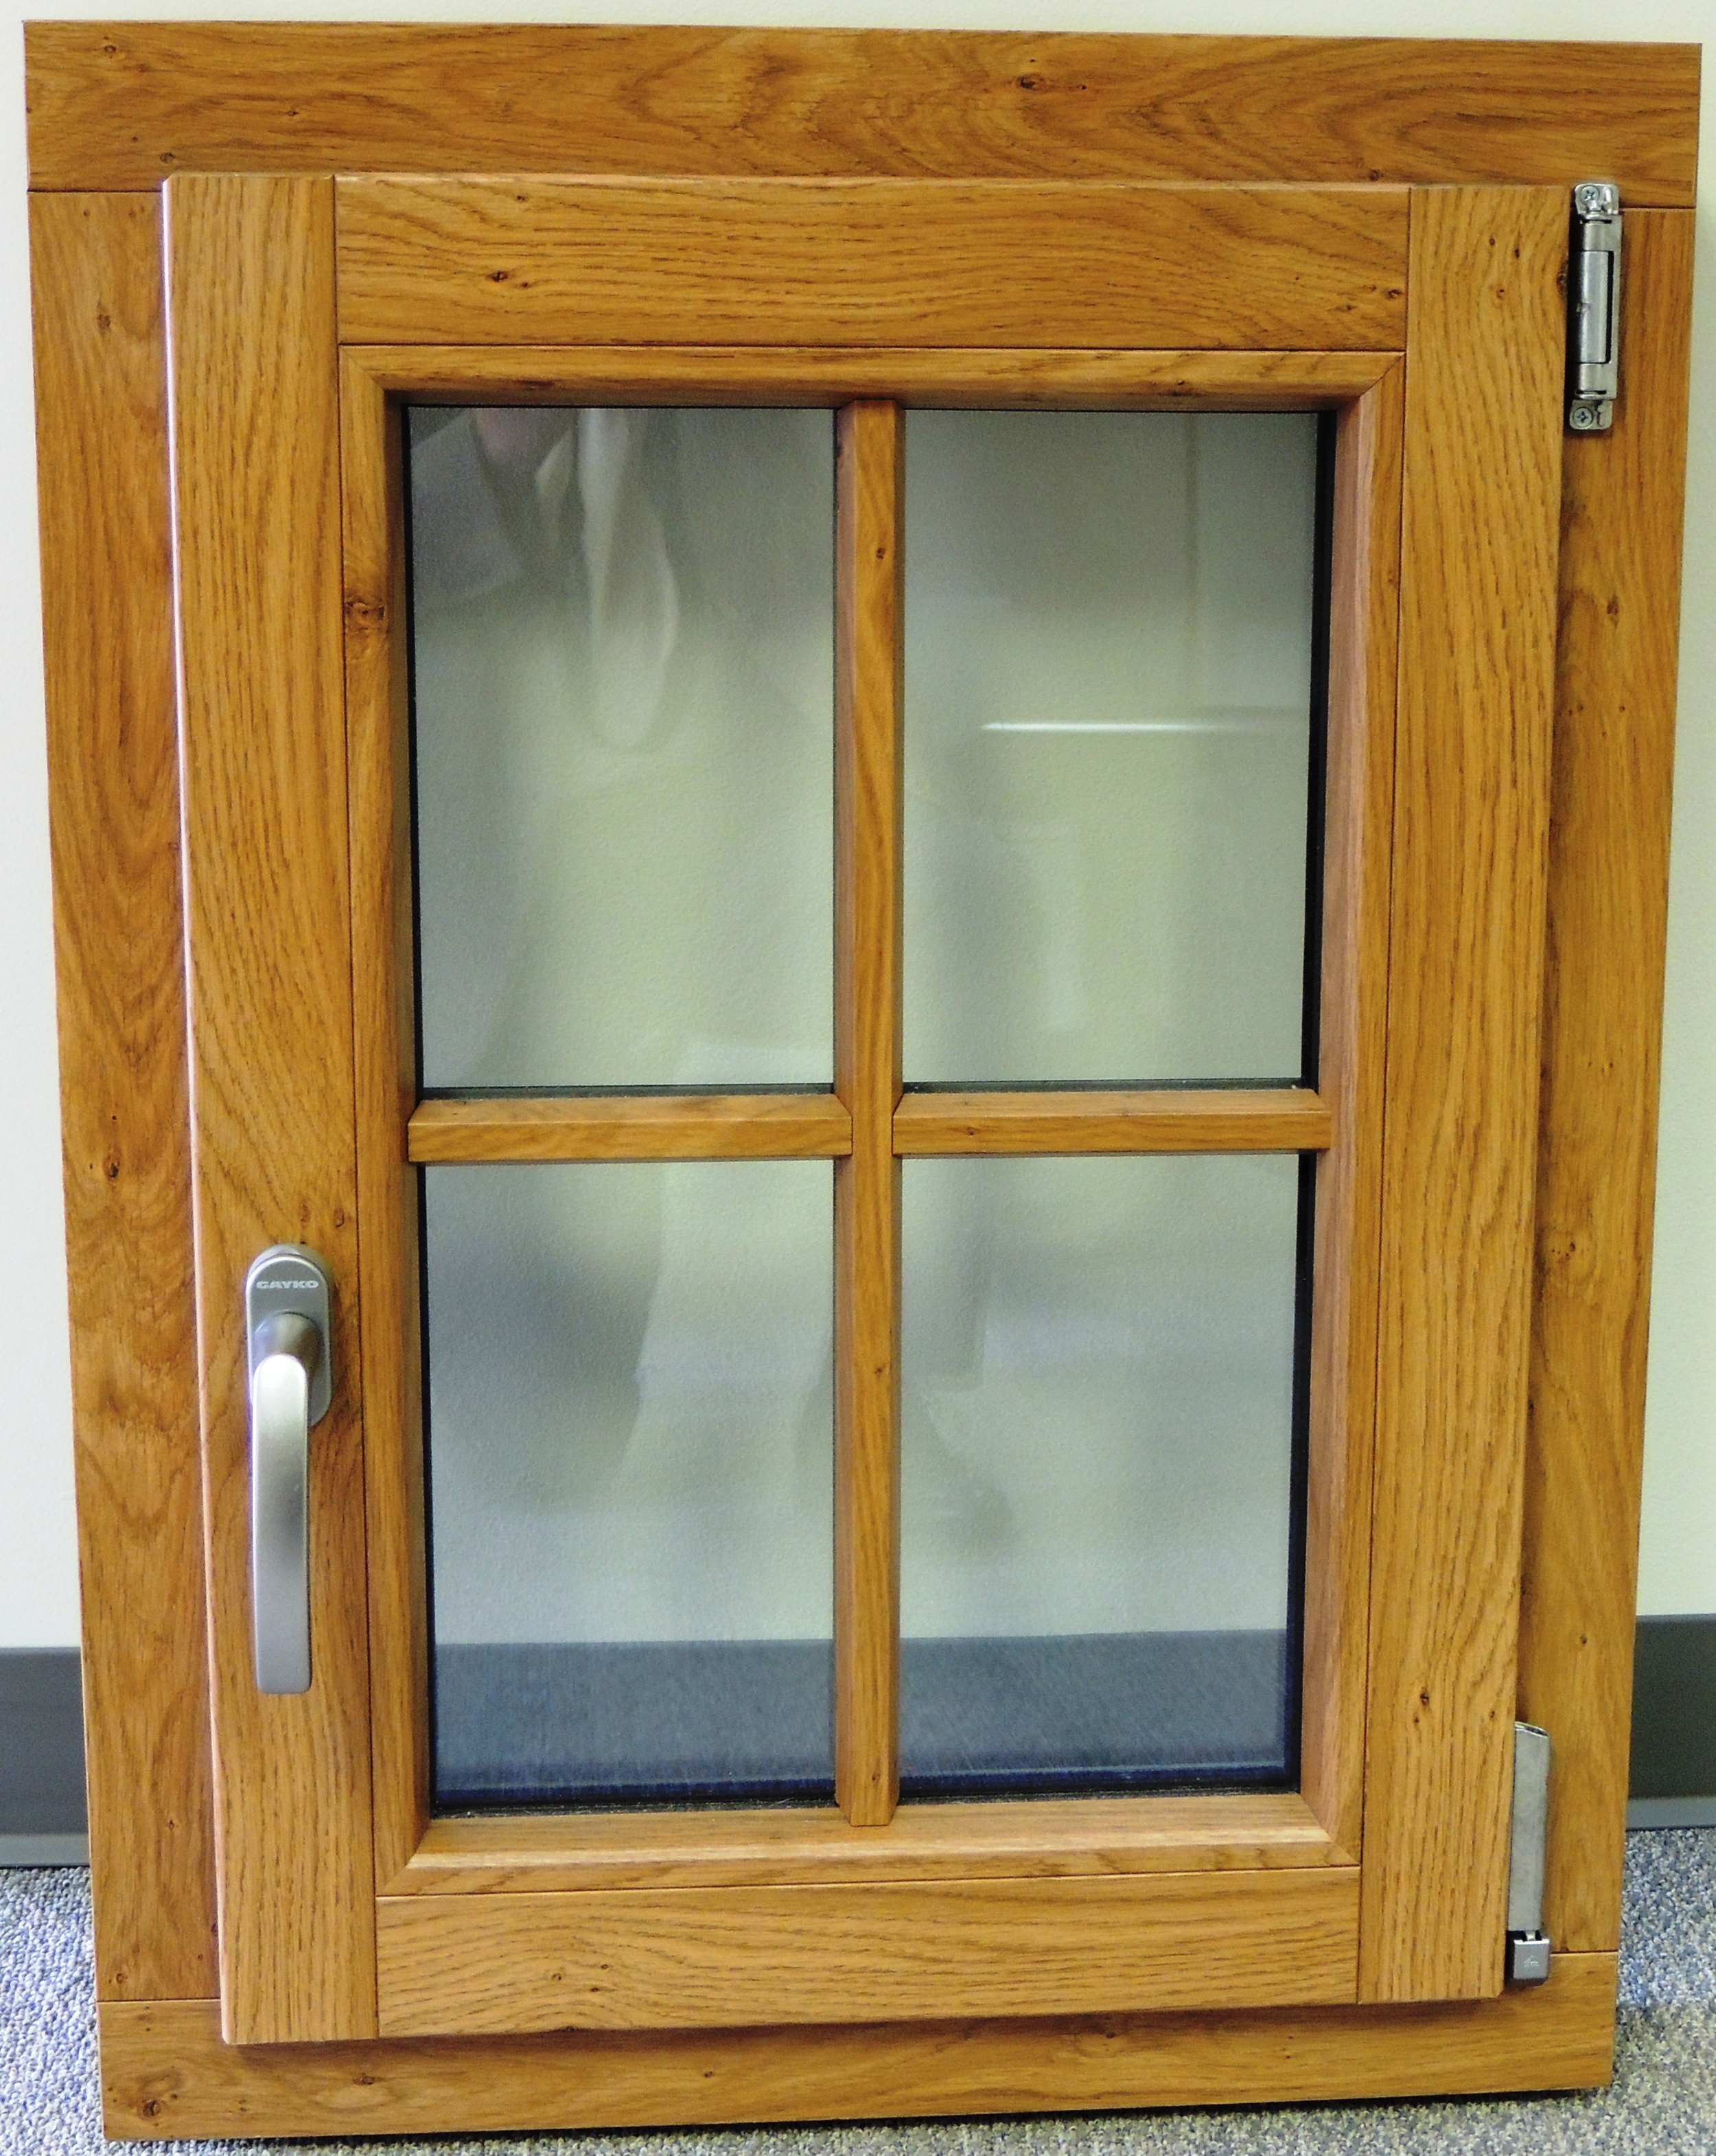 Vinyl window with wood grain lamination and 90 degree miter